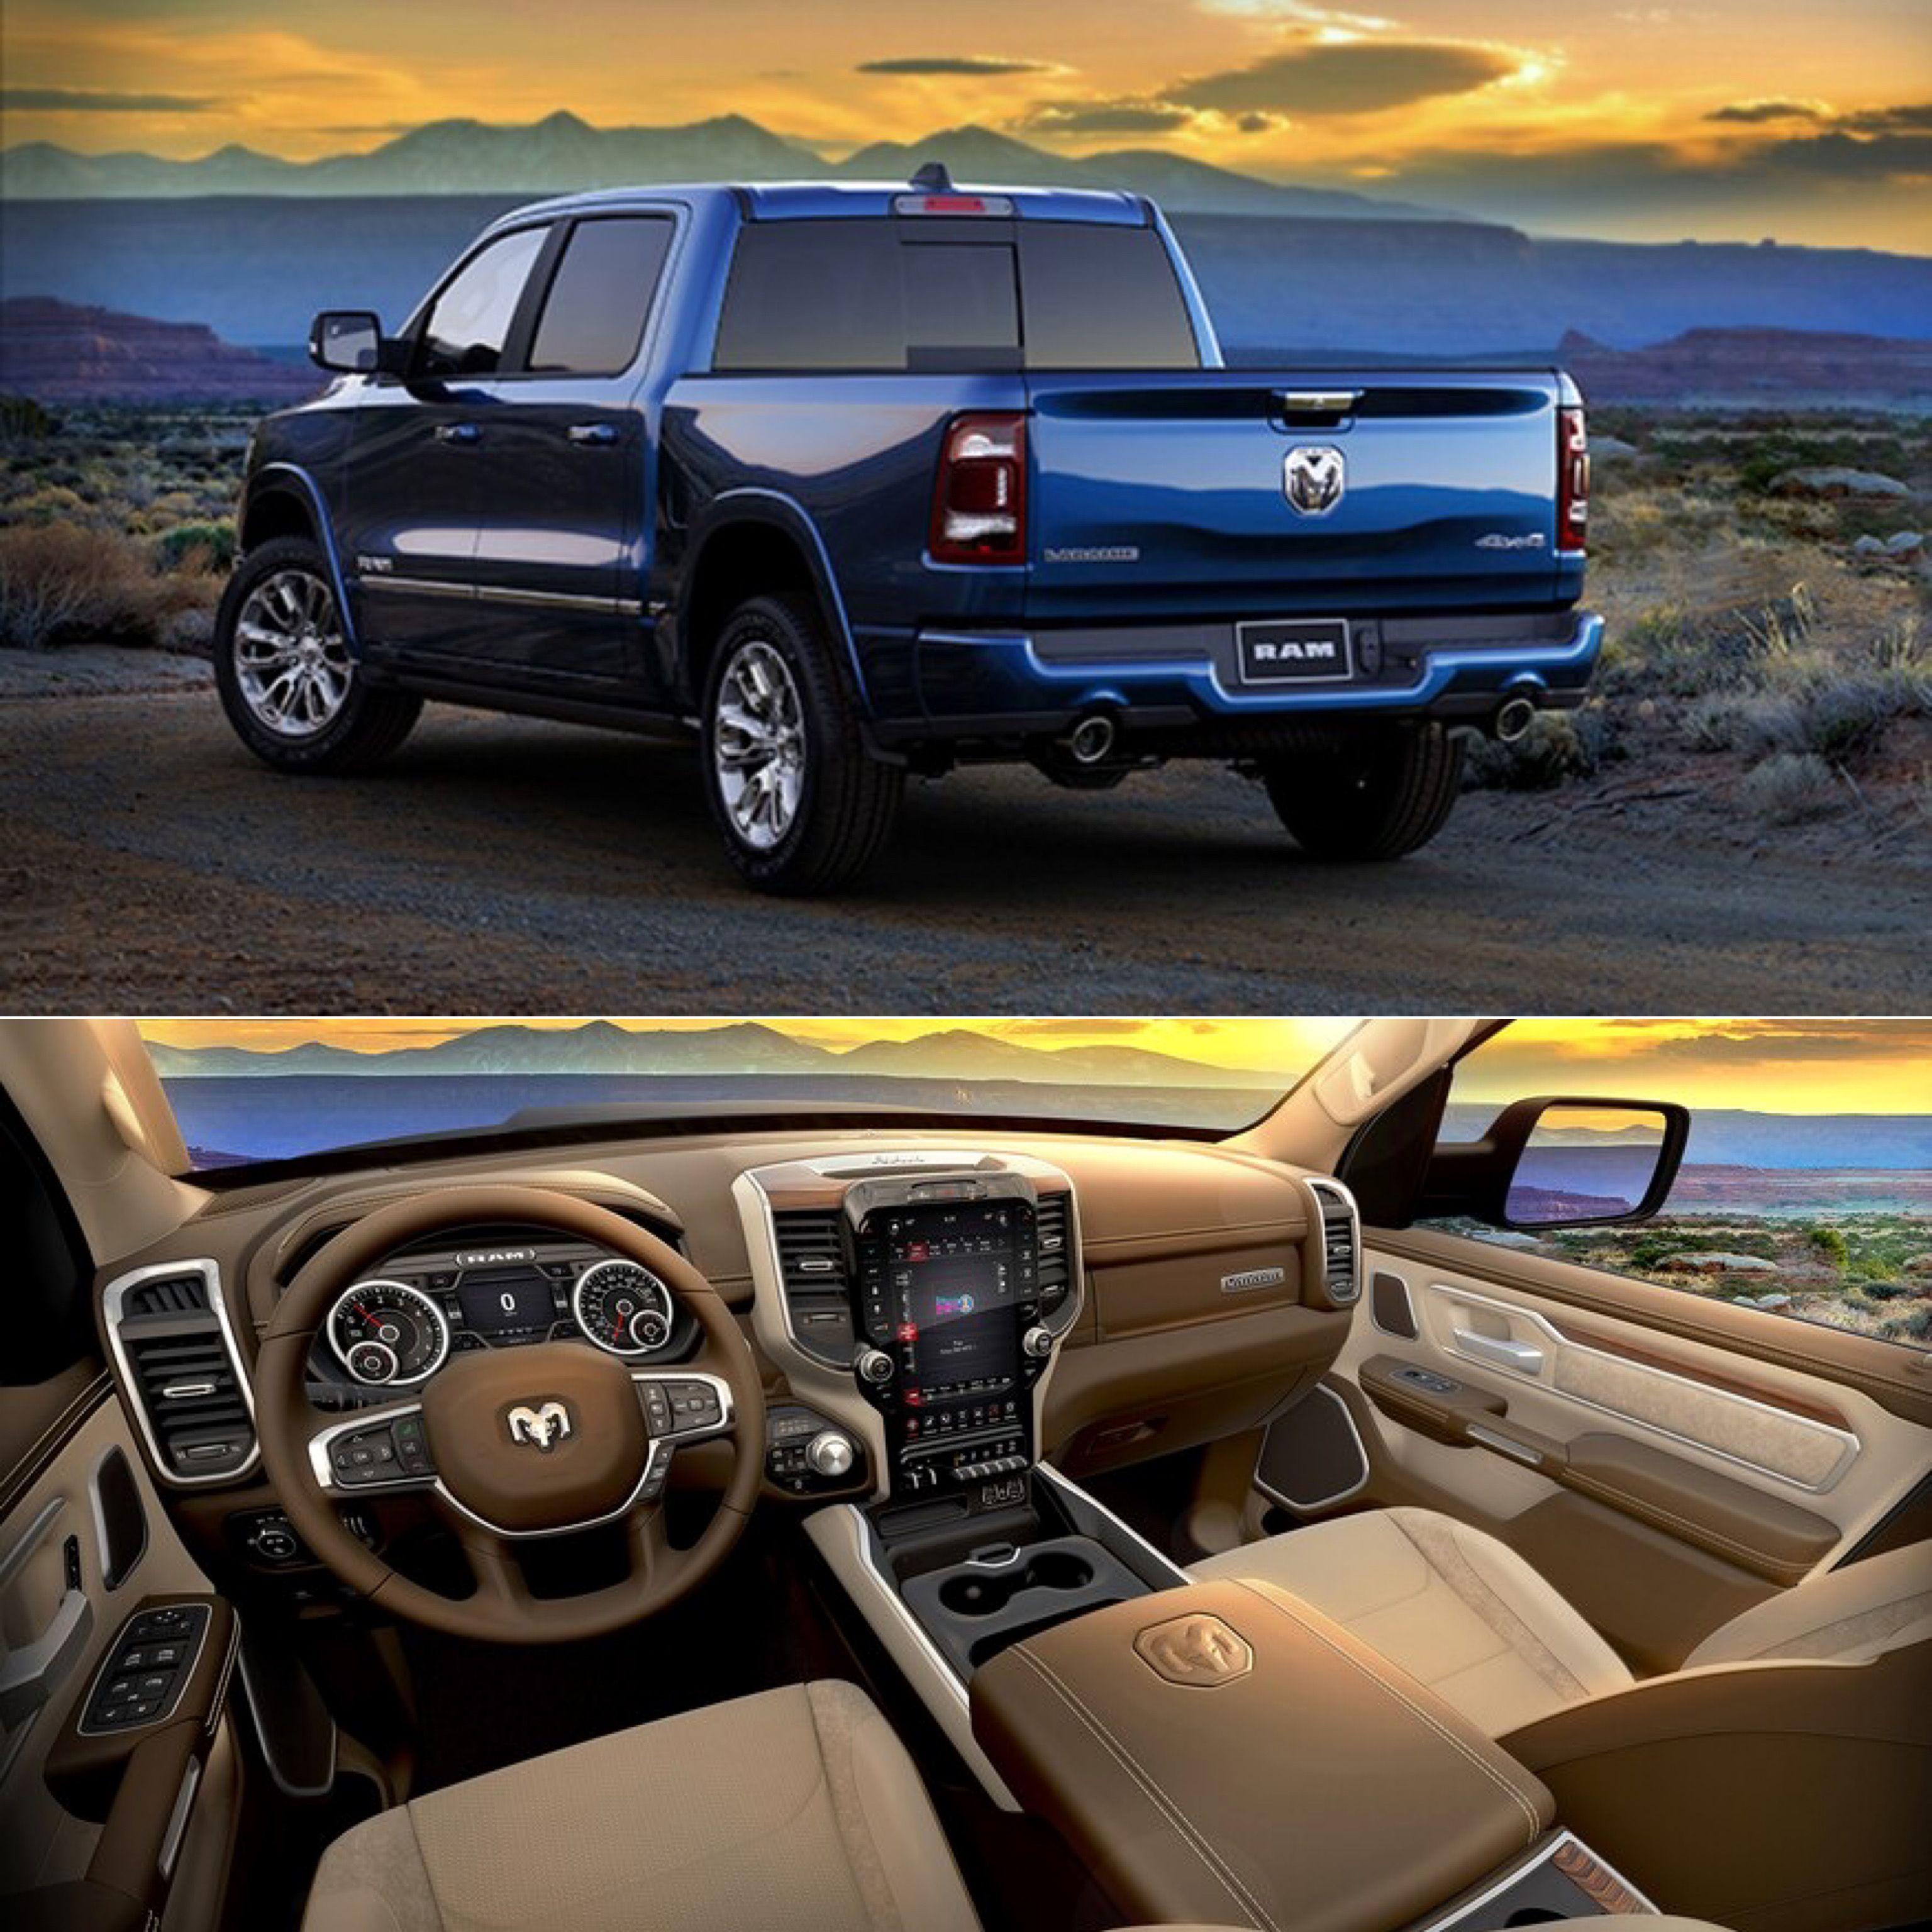 2021 Ram 1500 Built To Serve Edition Honors Nautical Armed Forces In 2020 Ram 1500 All Terrain Tyres Ram